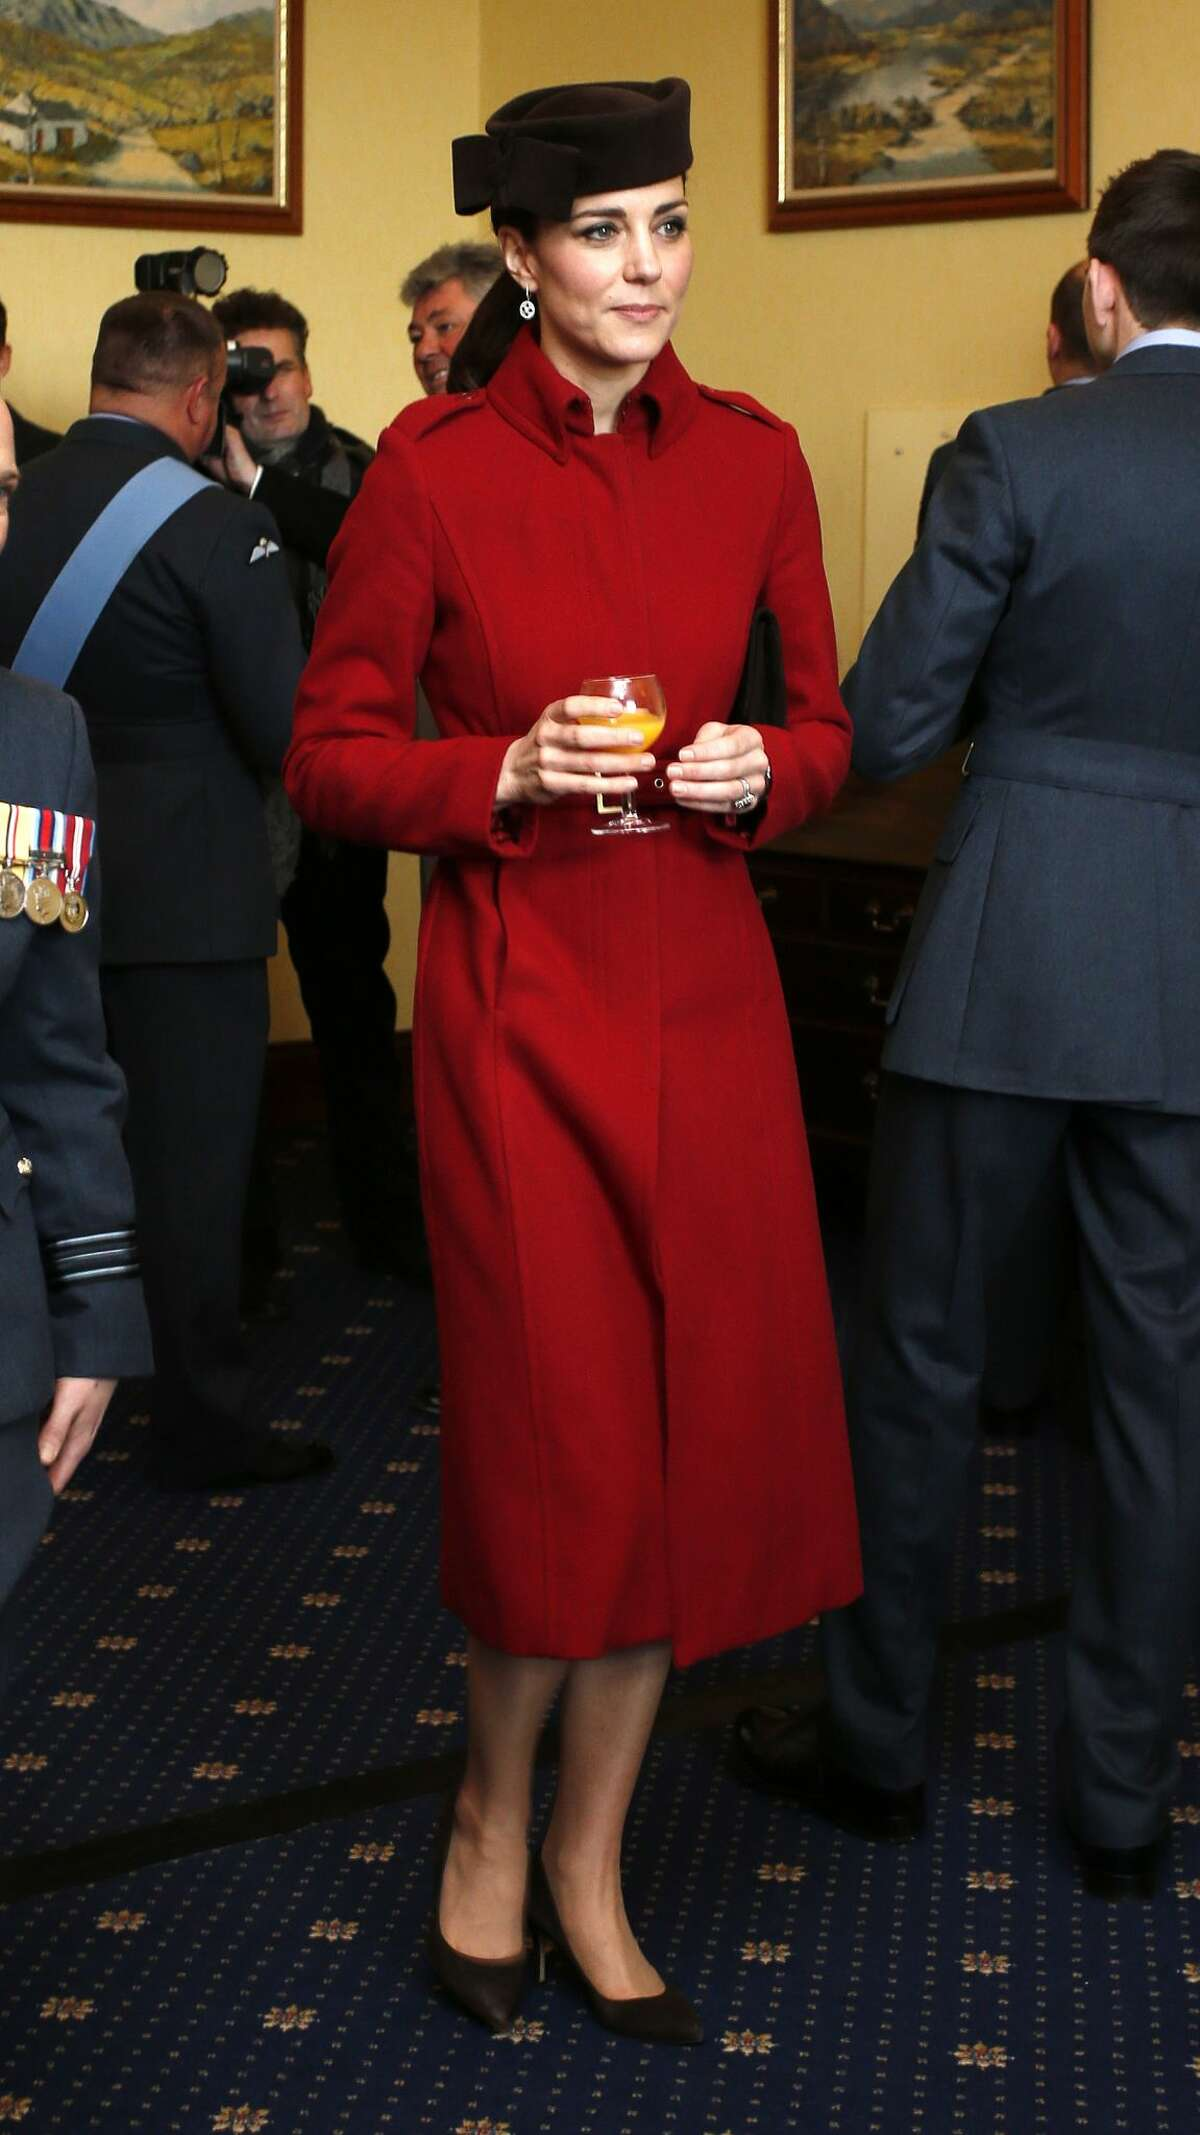 Catherine, Duchess of Cambridge attends a reception following the ceremony marking the end of RAF Search and Rescue (SAR) Force operations during a visit to RAF Valley on February 18, 2016 in Anglesey, Wales.